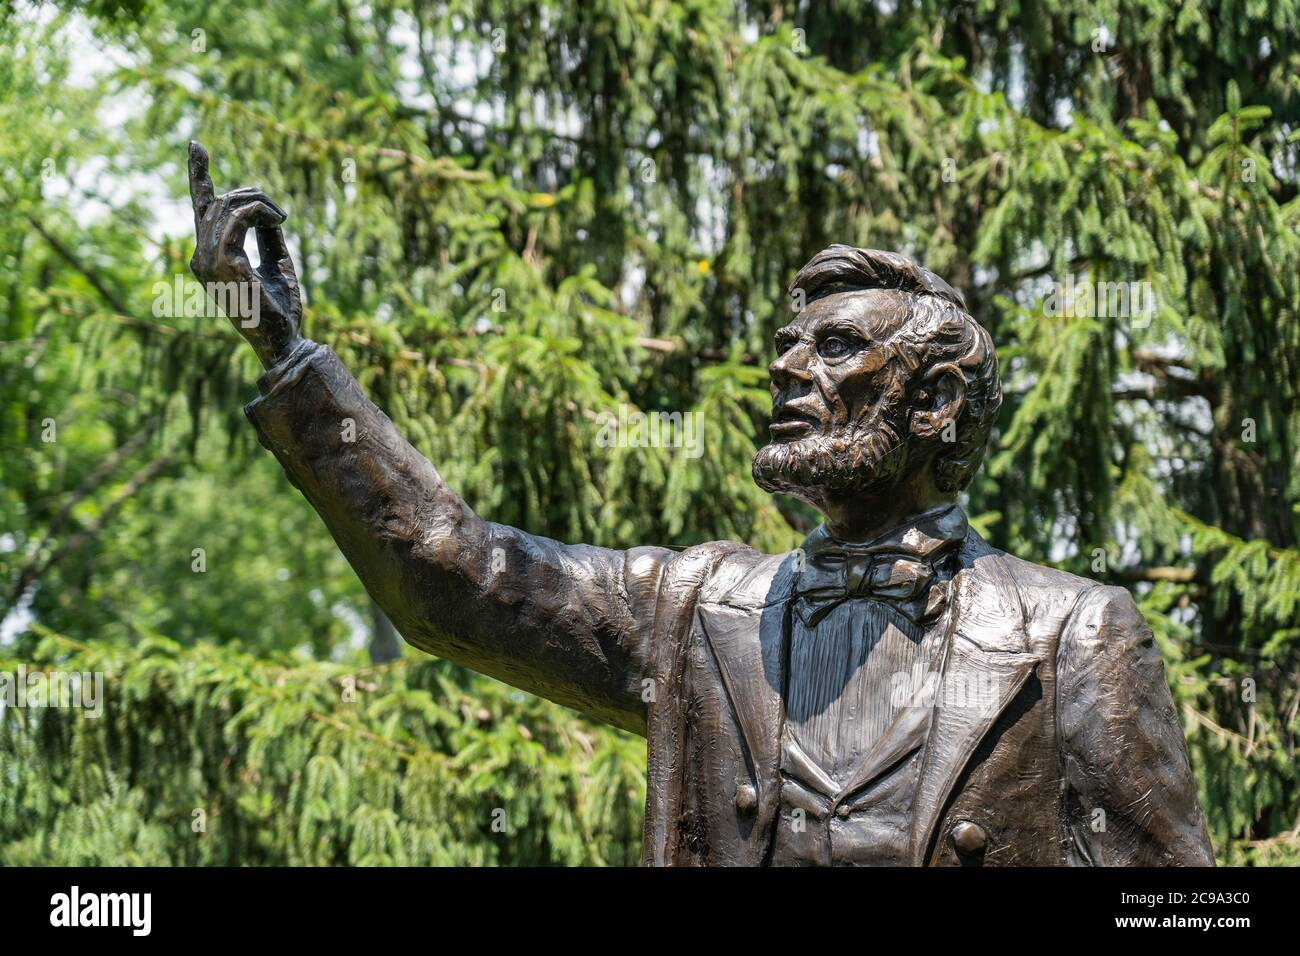 Valley Forge, PA - July, 3, 2020: Detail of the President Lincoln delivering the Gettysburg Address statue by Stan Watts at the Freedoms Foundation at Stock Photo